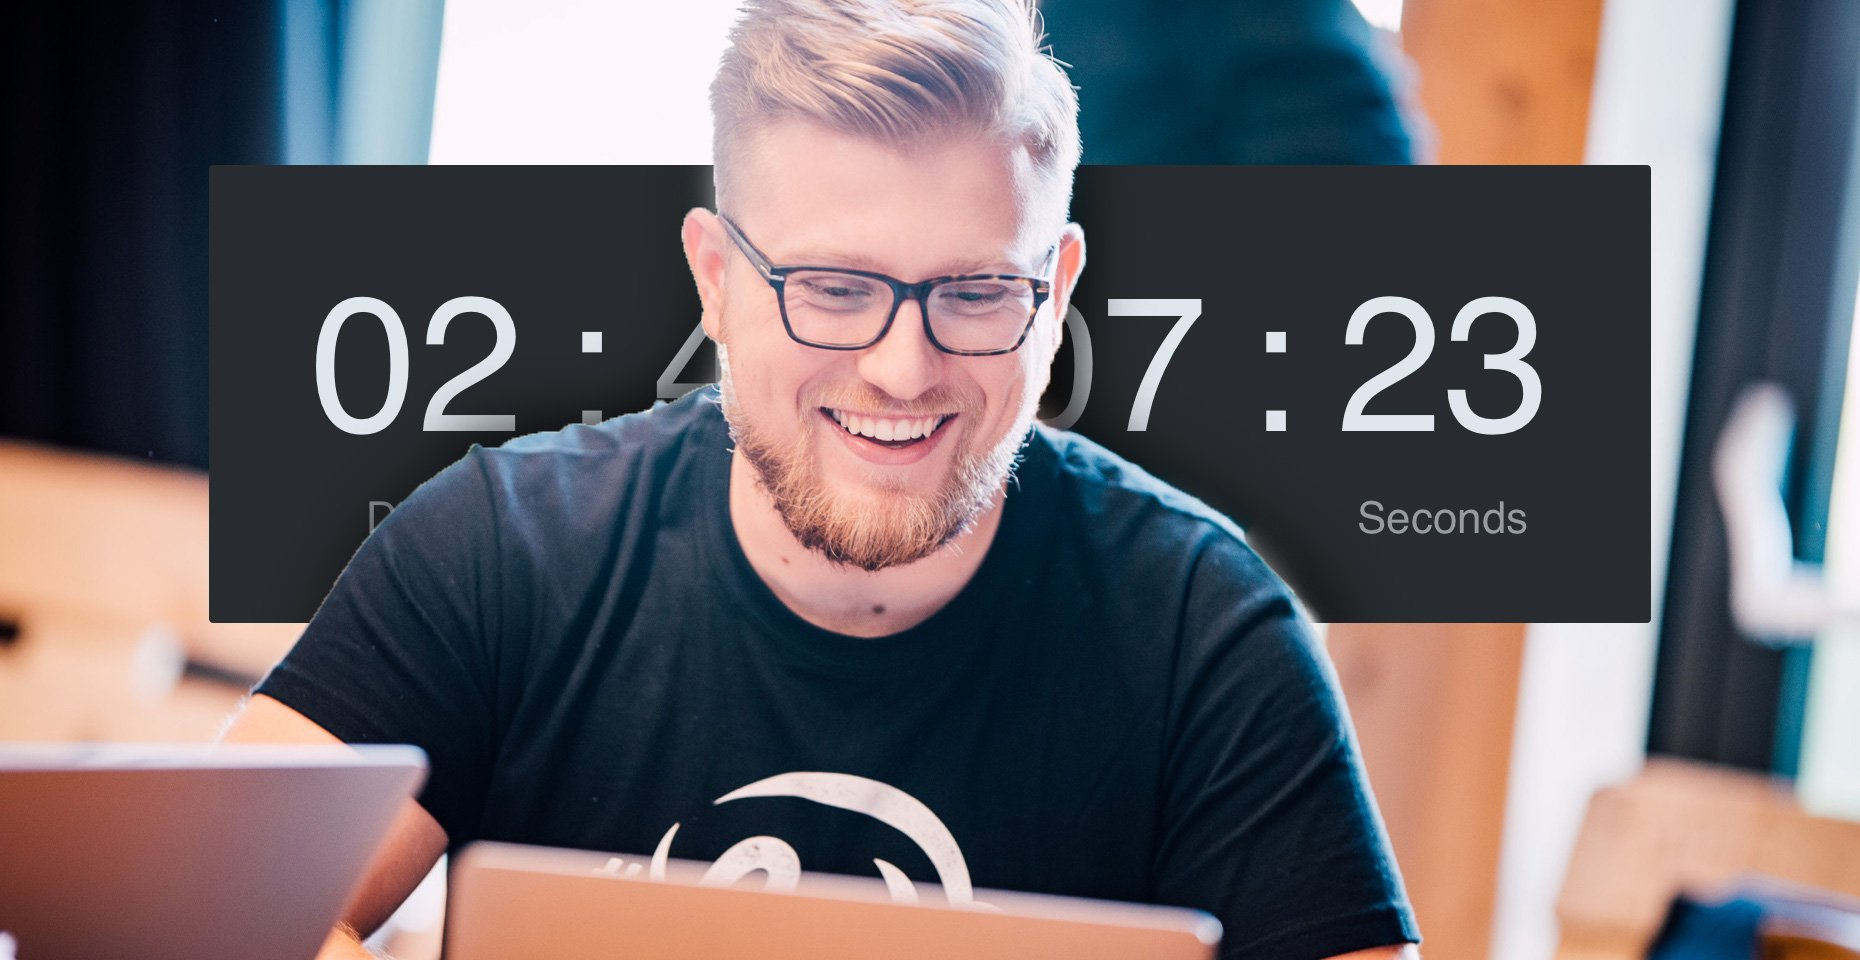 11 great ways to use email countdown timers to increase conversions